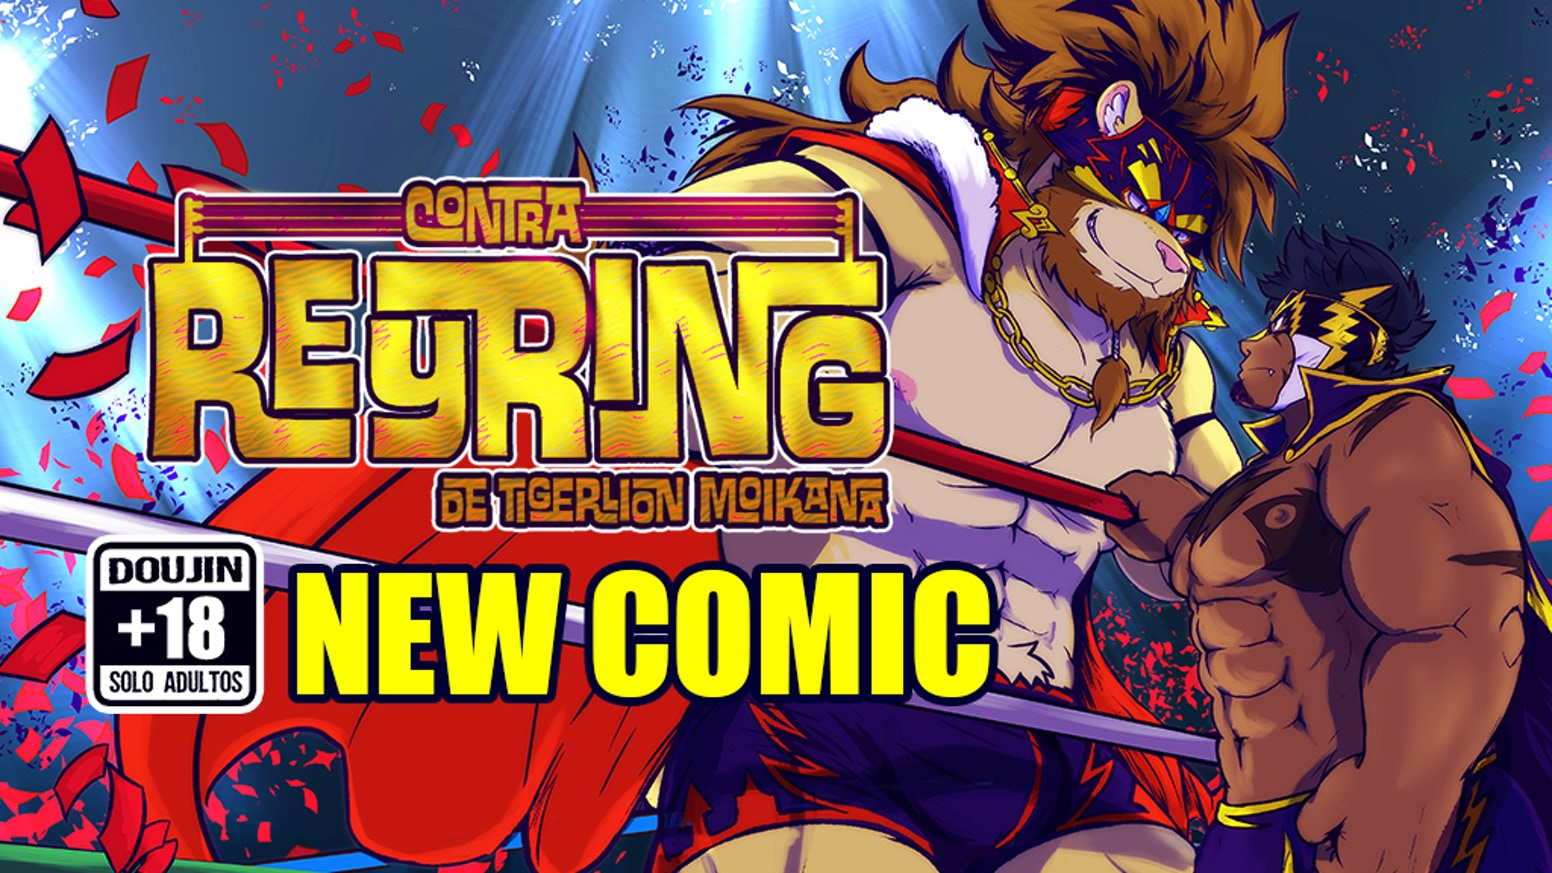 VS Reyring Comic Lucha libre, comedia, golpes y mucha calentura!